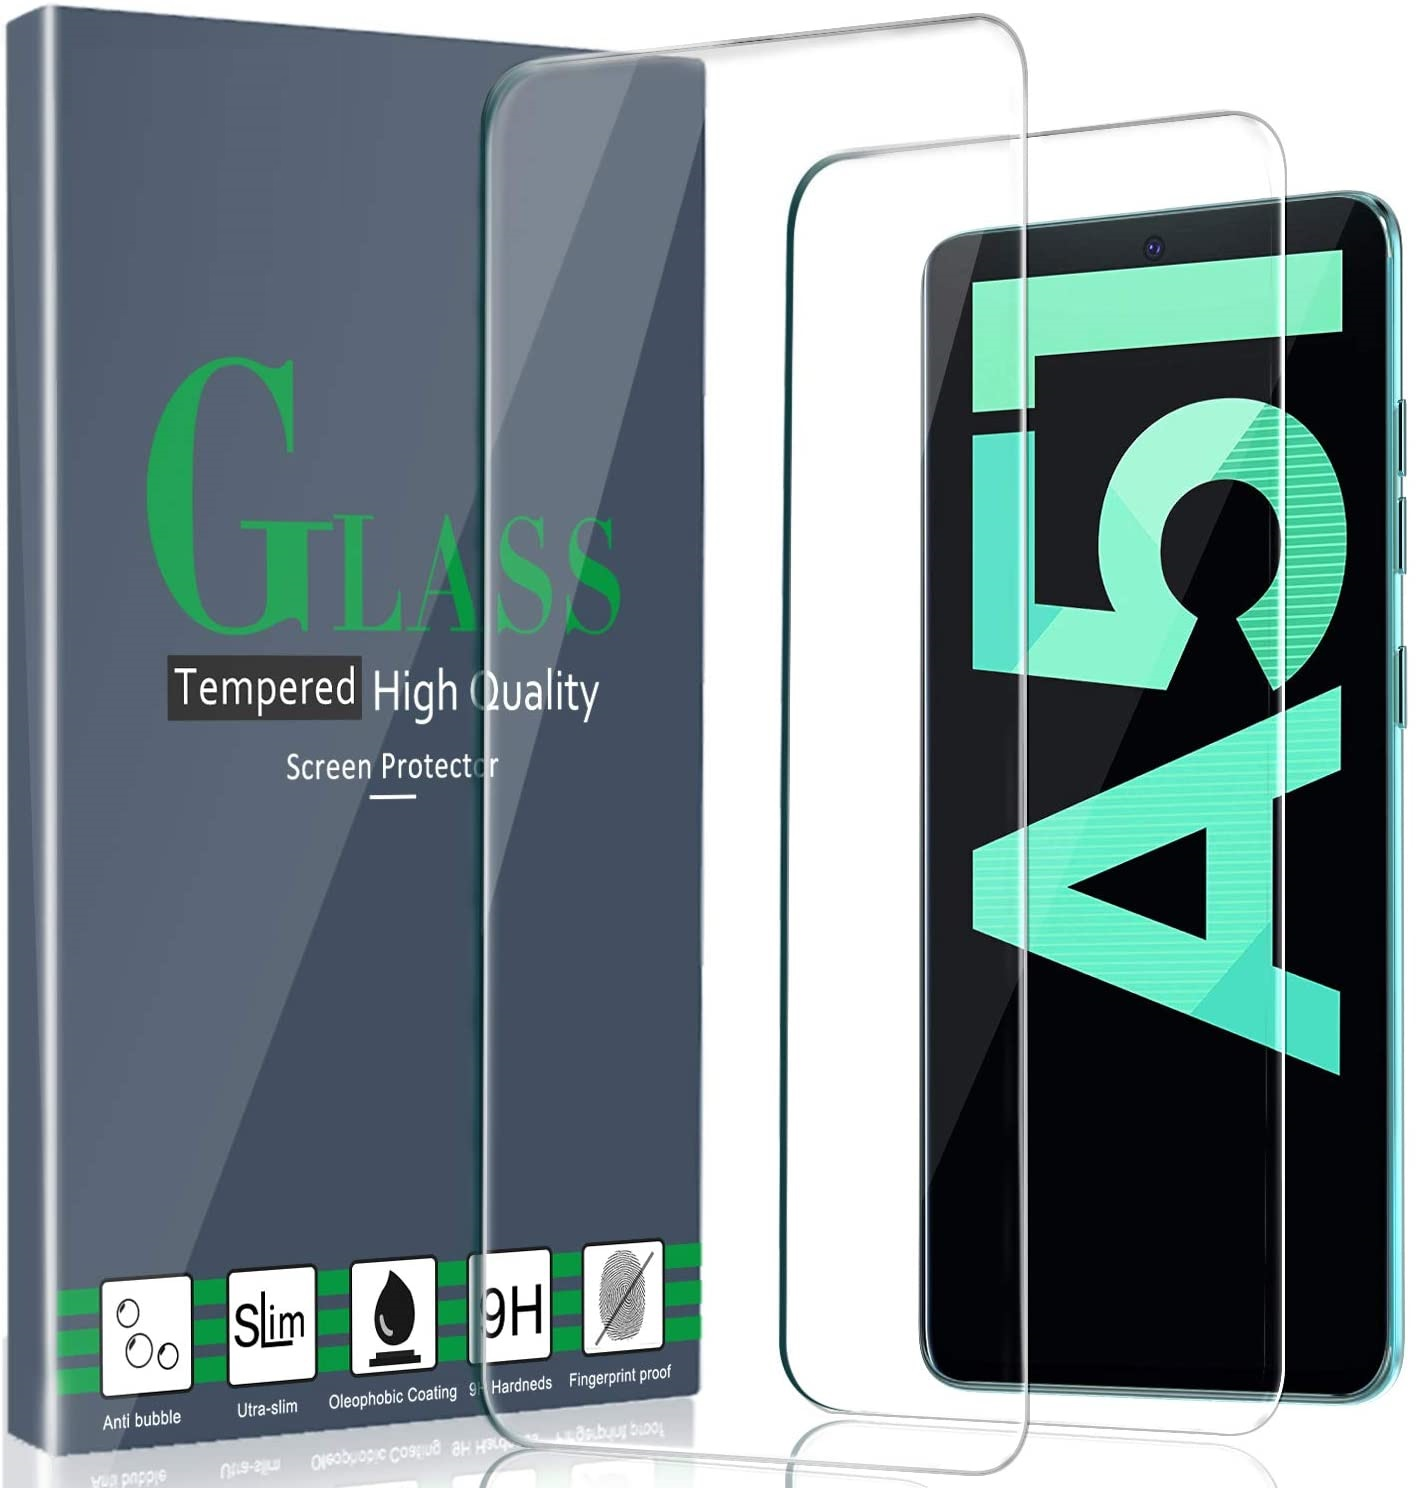 <font><b>Tempered</b></font> <font><b>Glass</b></font> For <font><b>Samsung</b></font> Galaxy A30 A50 Screen Protector 9H Safety Protective Film On A 30 50 A70 A40 A60 M20 M30 <font><b>A10</b></font> A51 A71 image